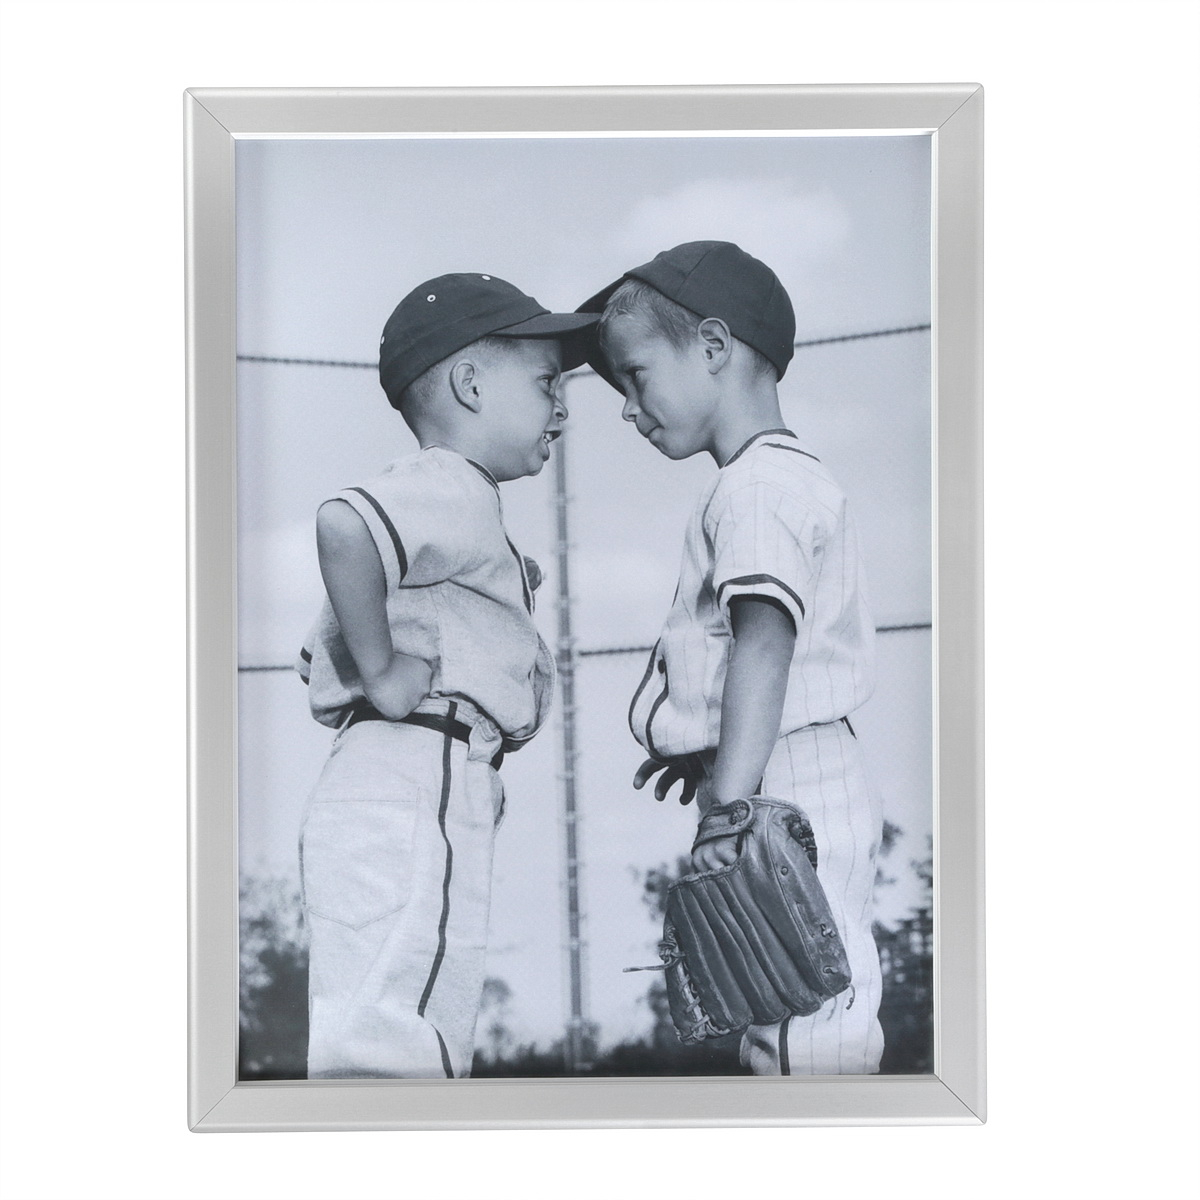 Aluminum Front Load Easy Snap Wall Poster Frame, Silver, 1.25'' profile, 11''x17''